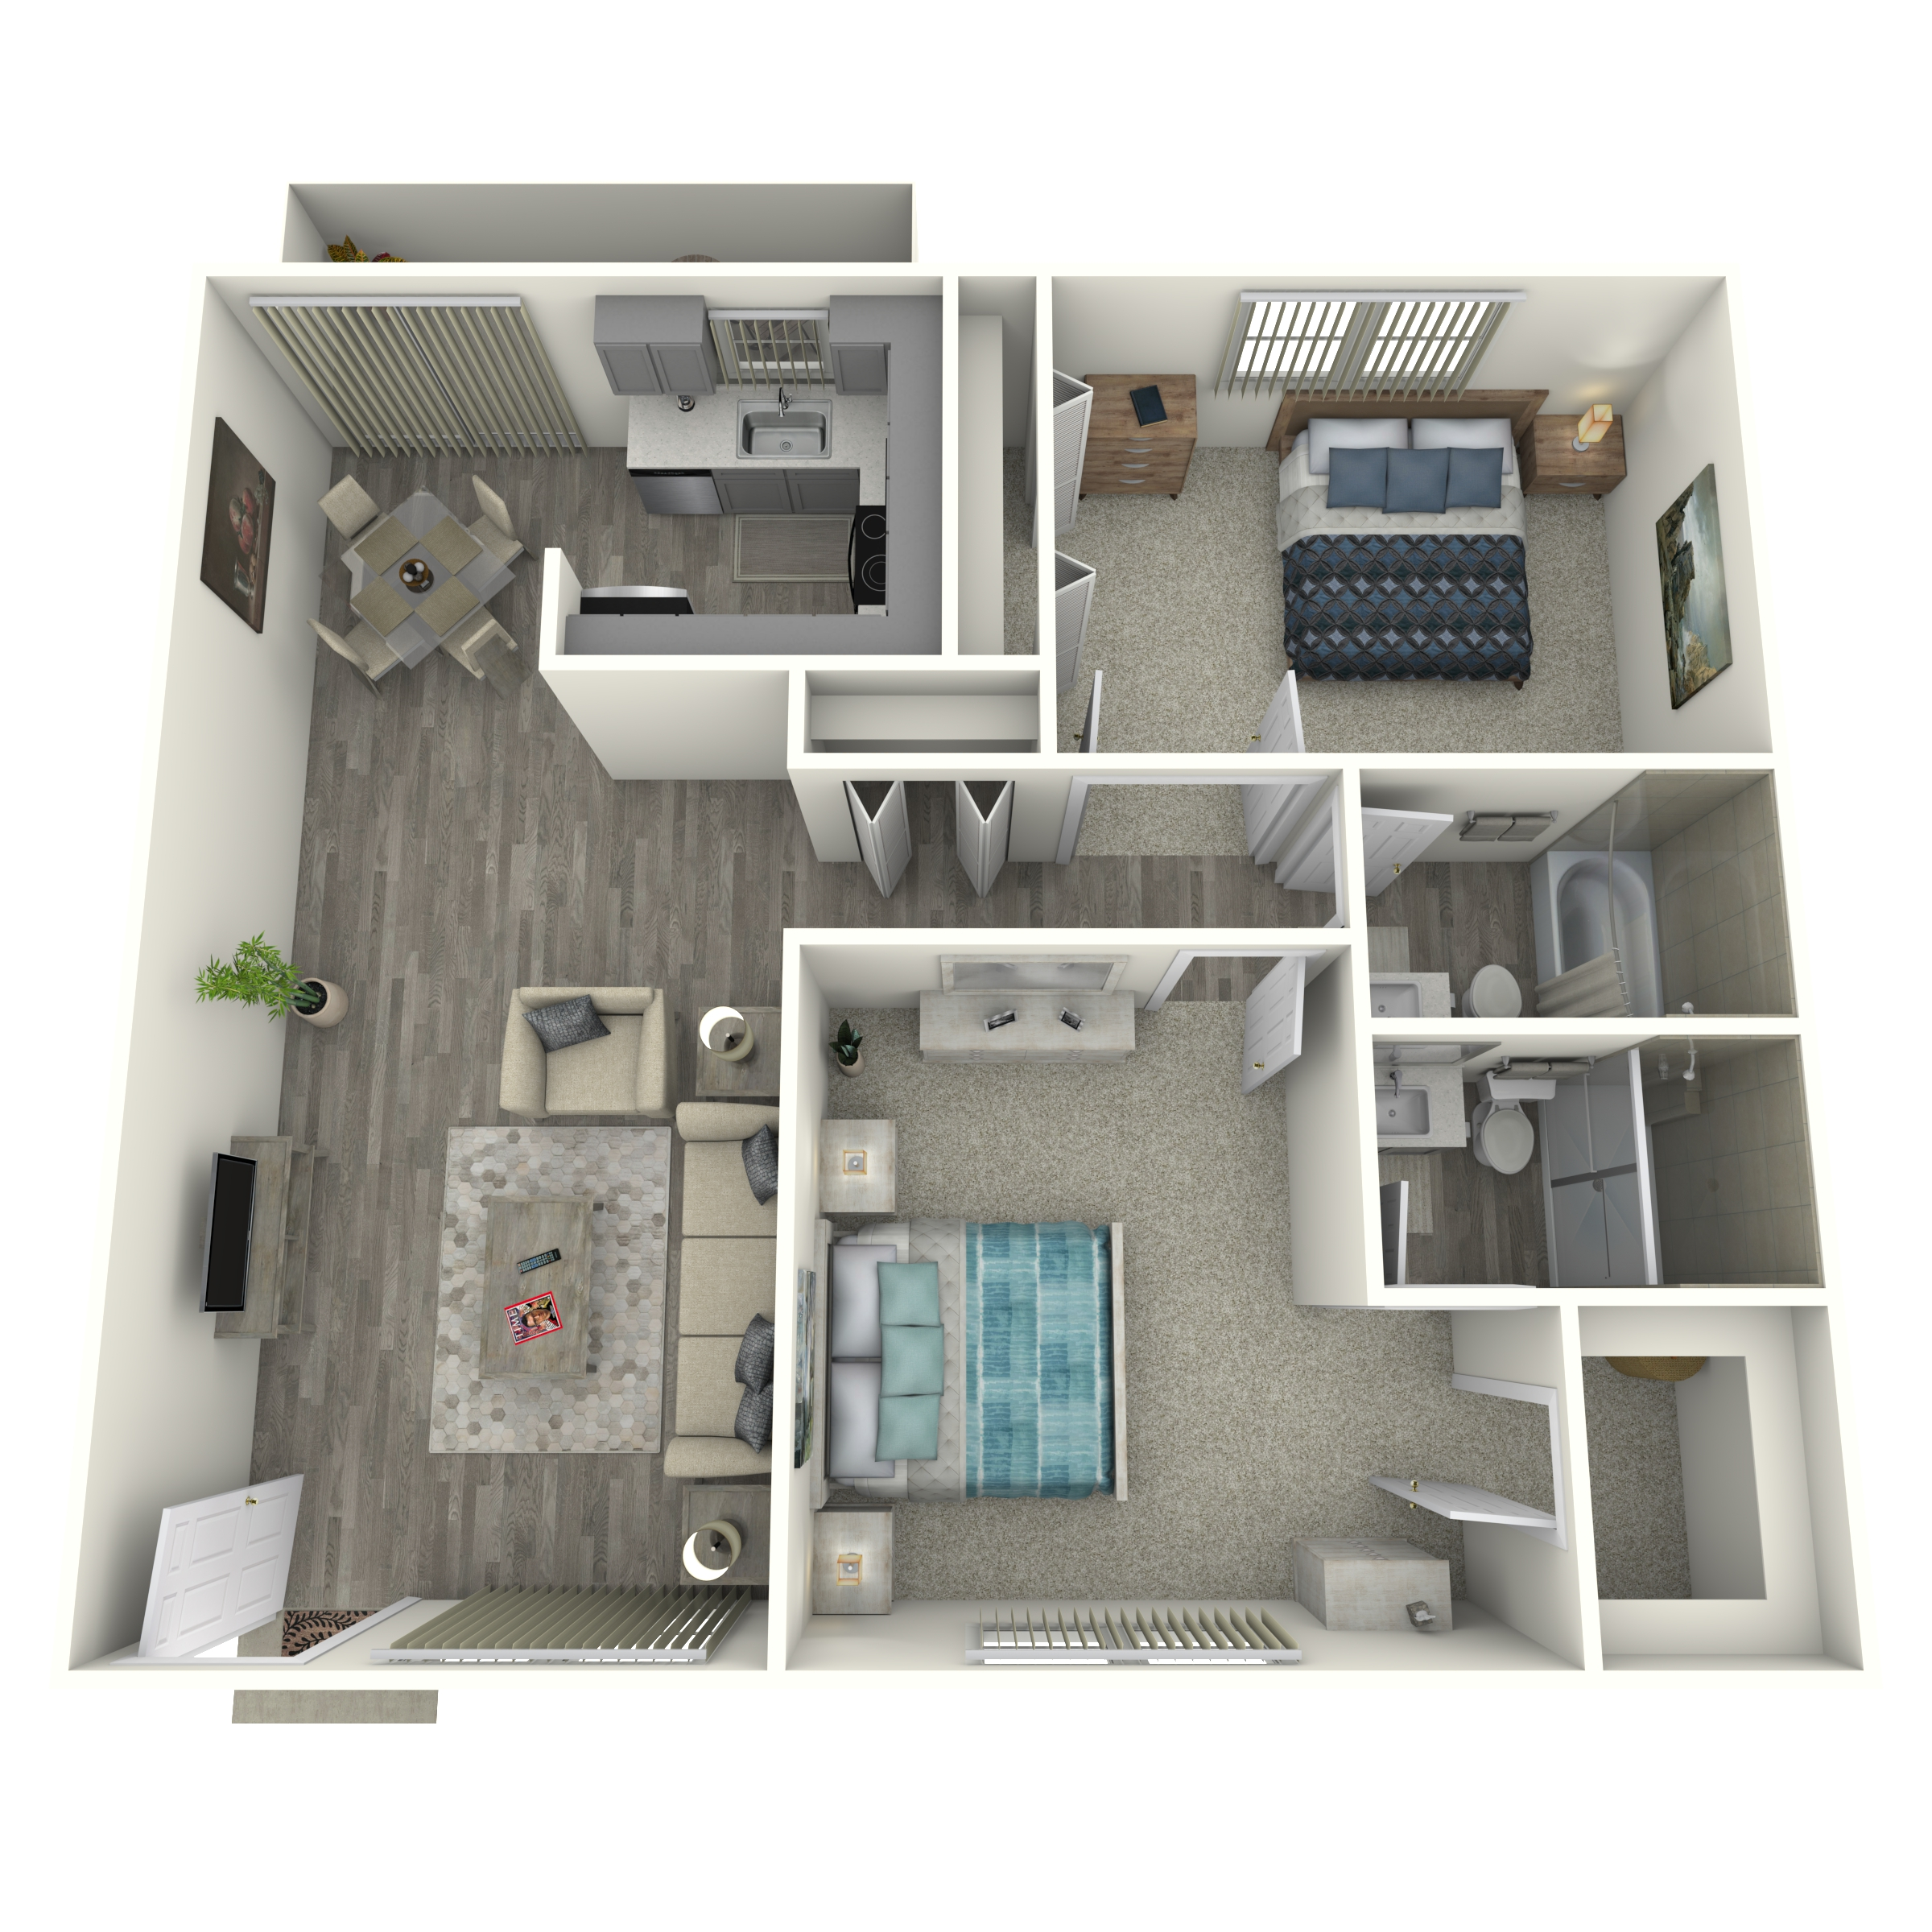 Floor plan image of 2x2 Small Renovated